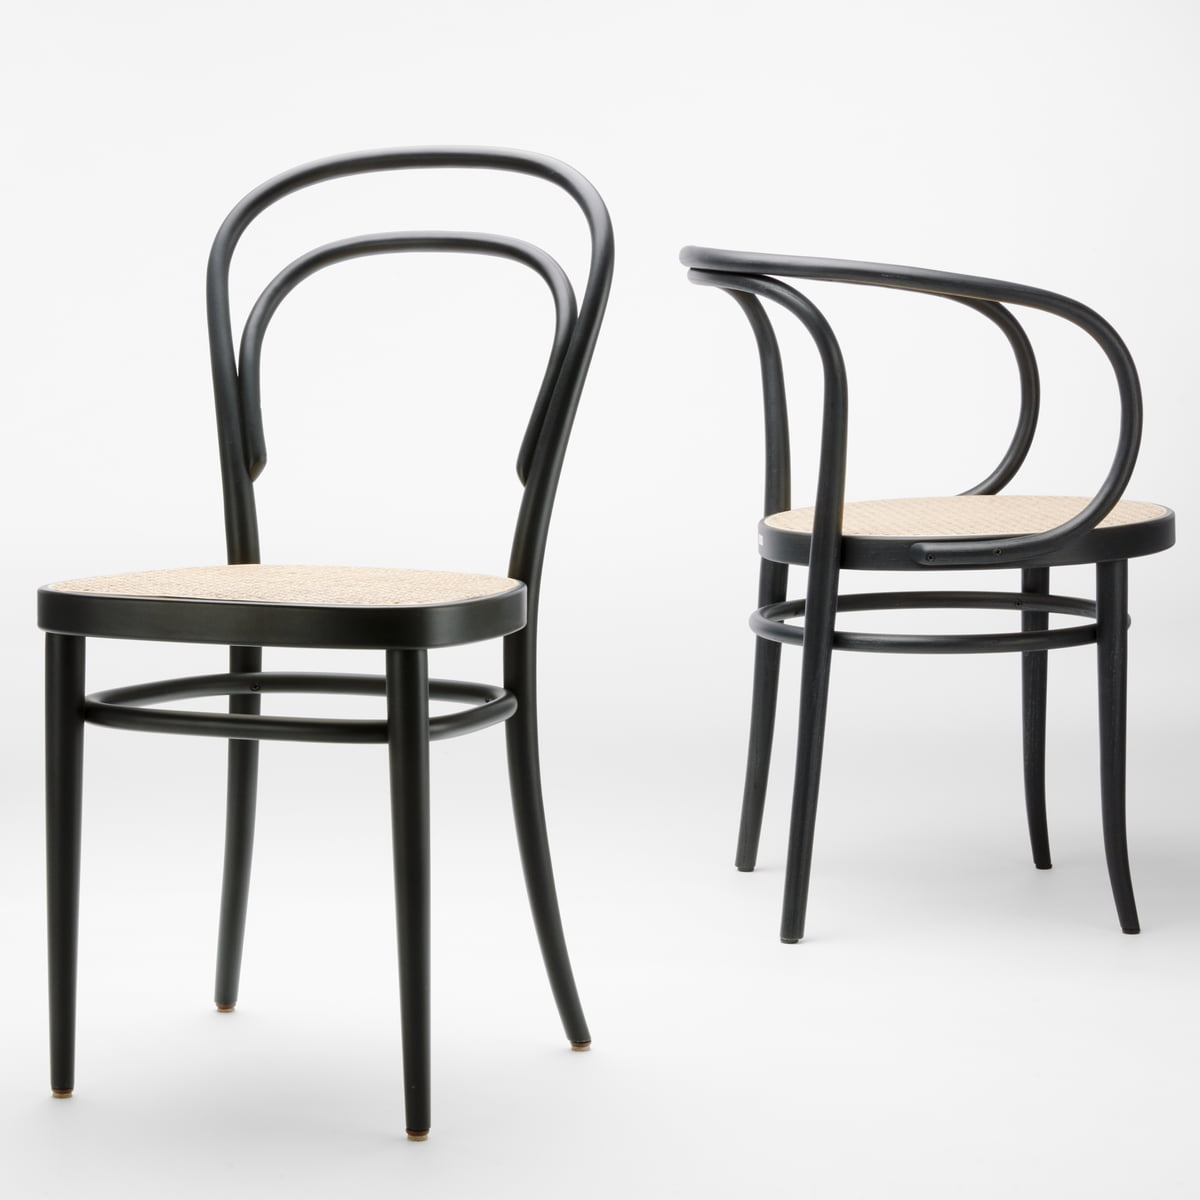 Gentil Coffee House Chairs 209 And 214 By Thonet